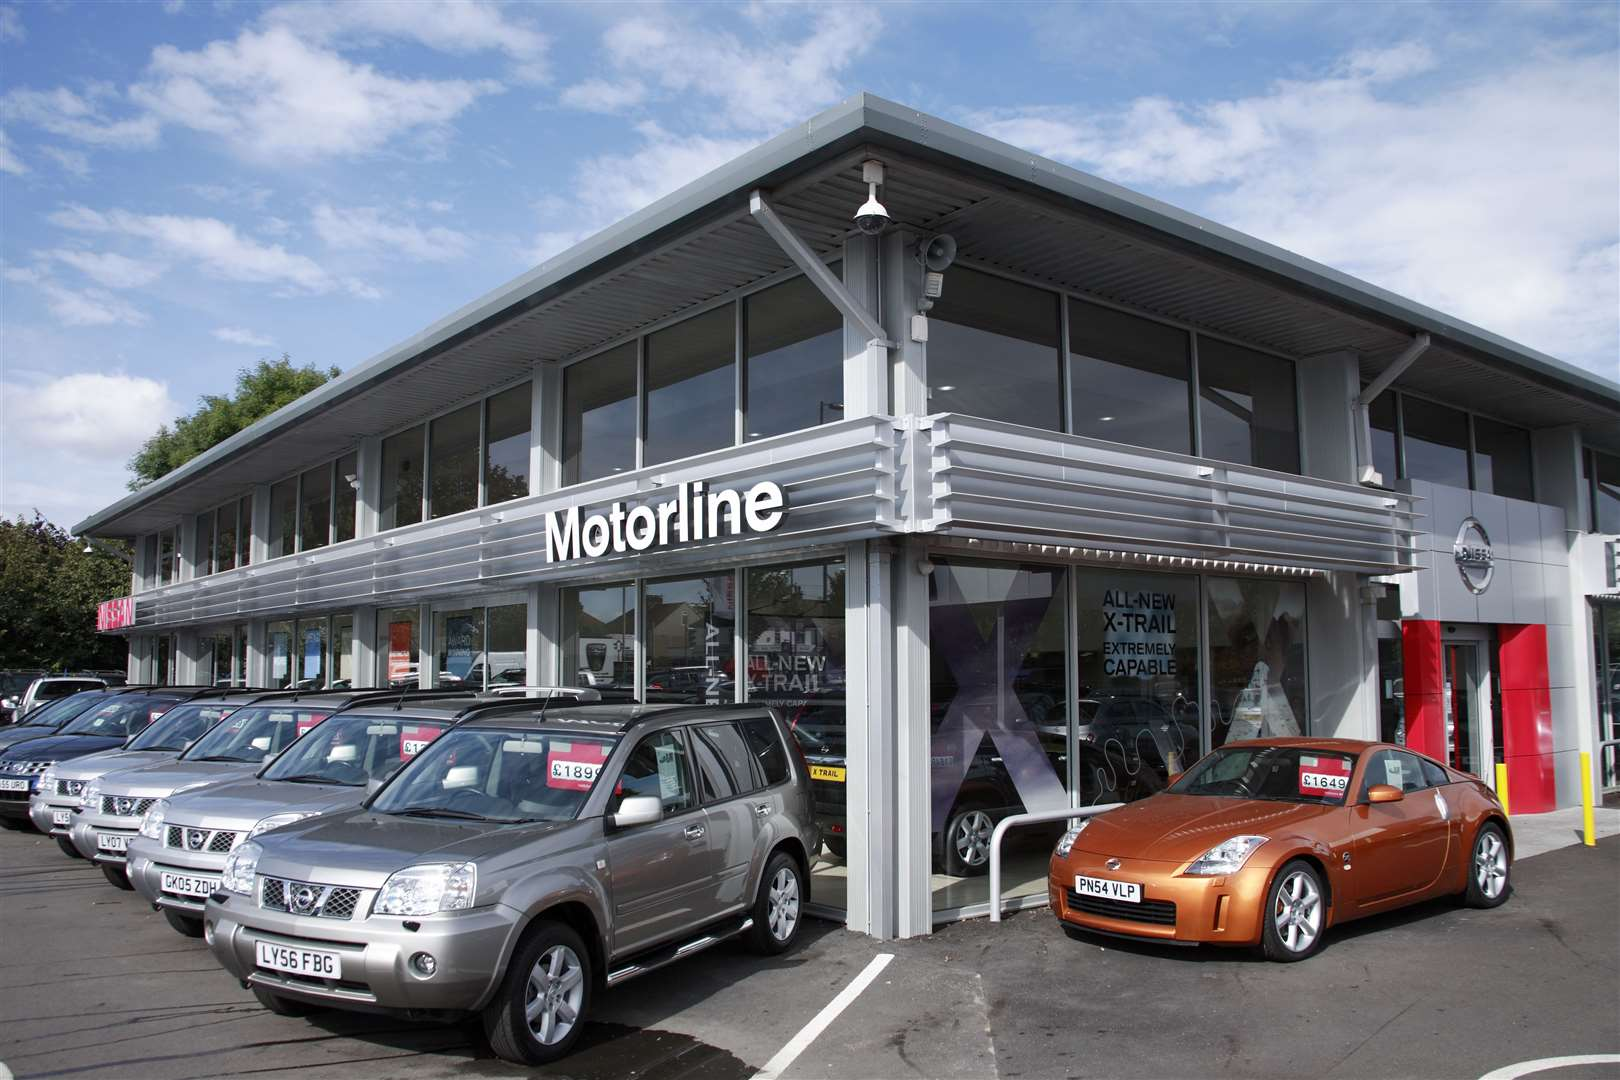 Motorline has a host of motor dealership across the county and UK